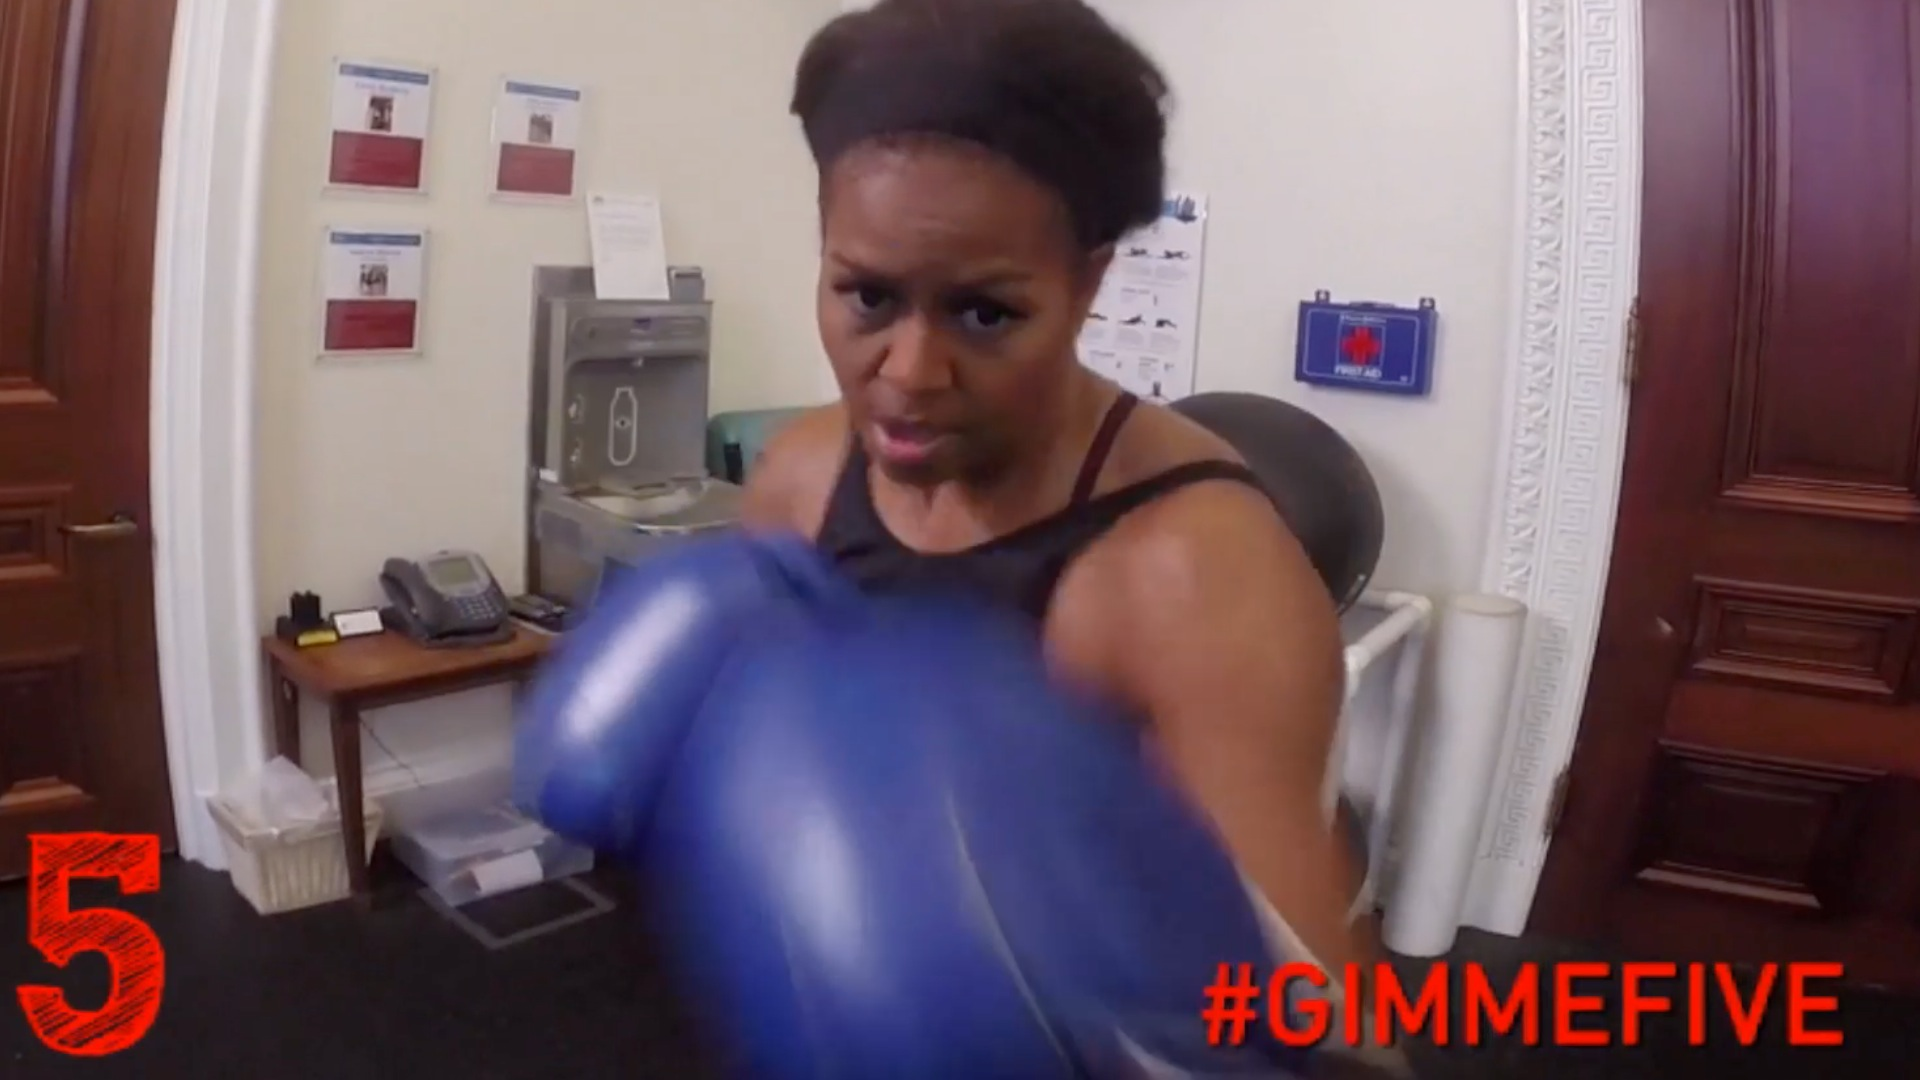 Seeing the Michelle Obama workout video, I finally get it